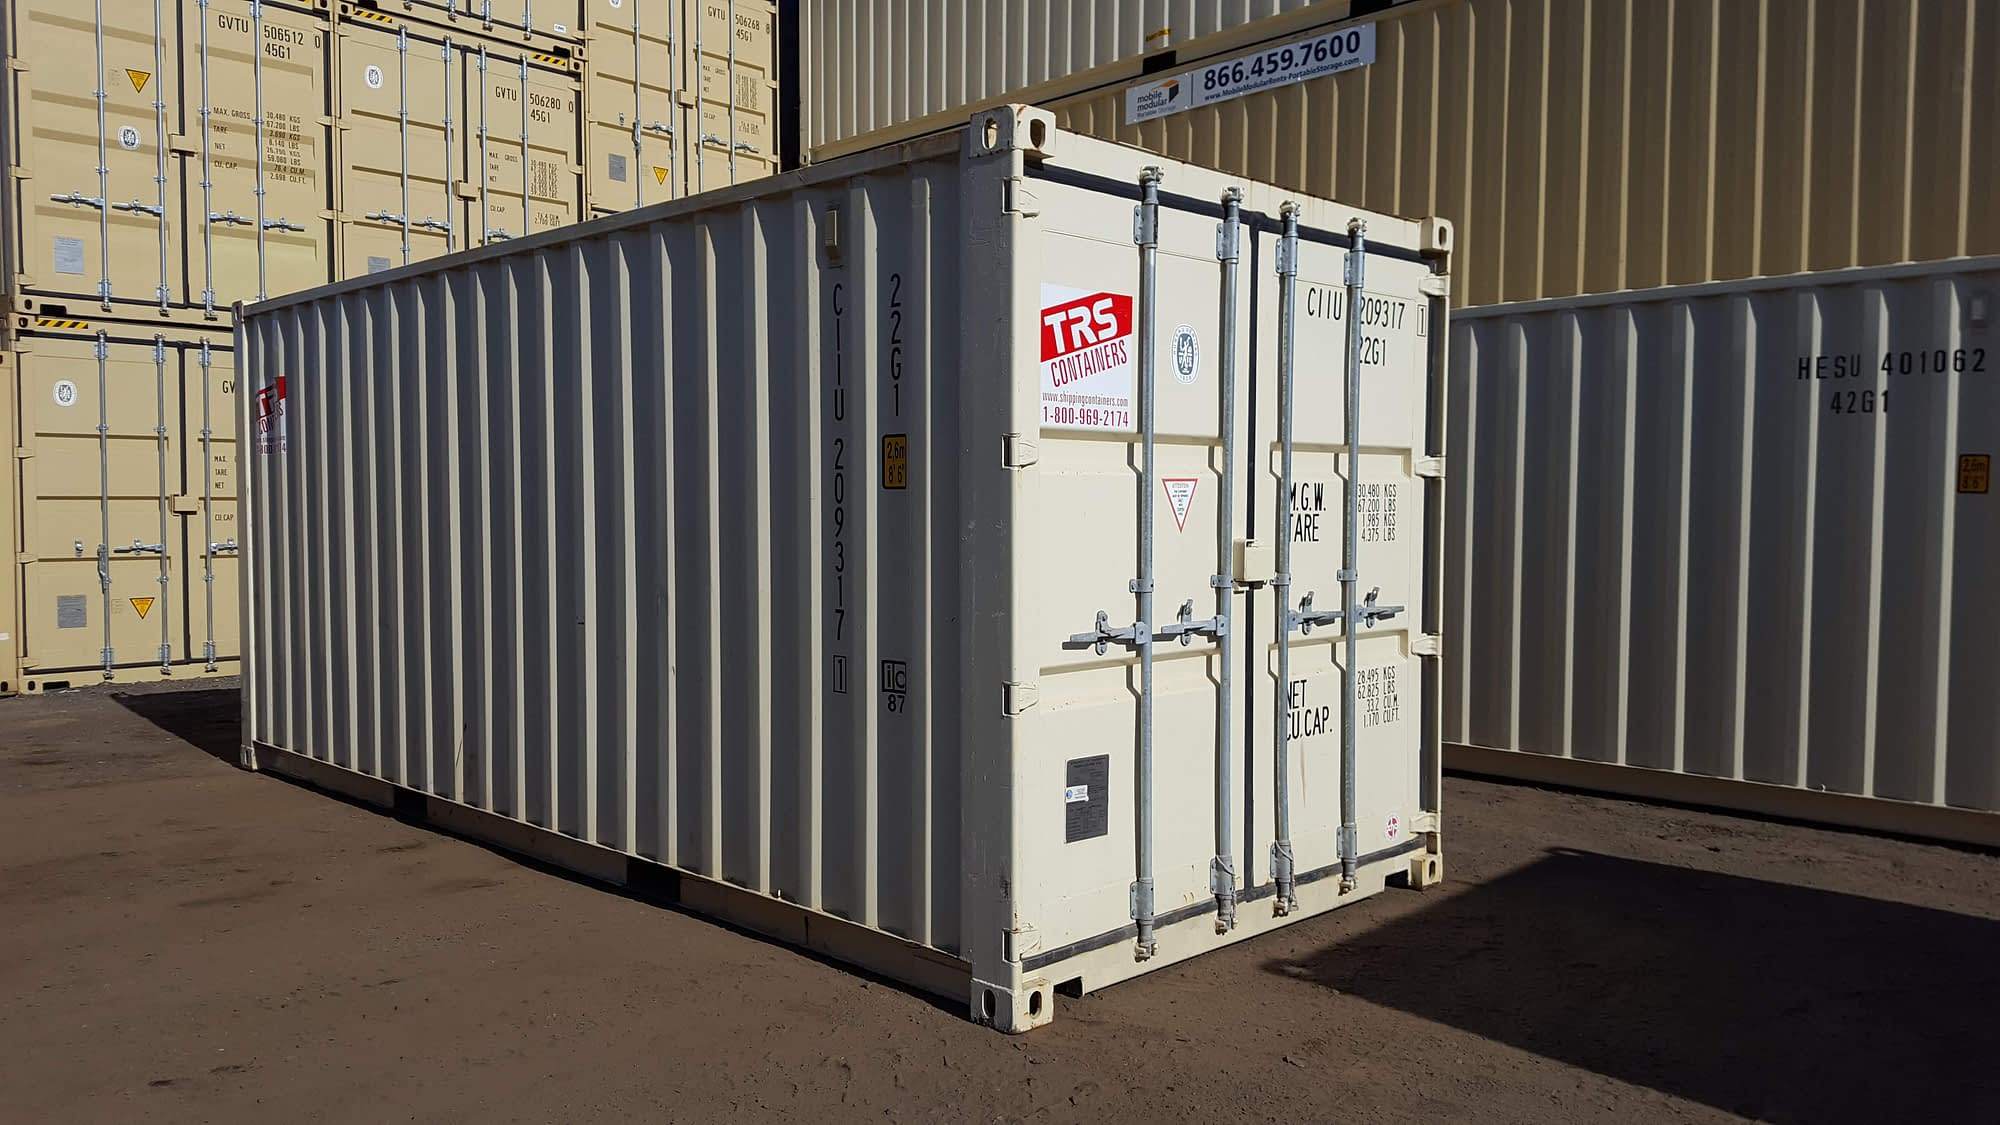 TRS new containers come in many colors